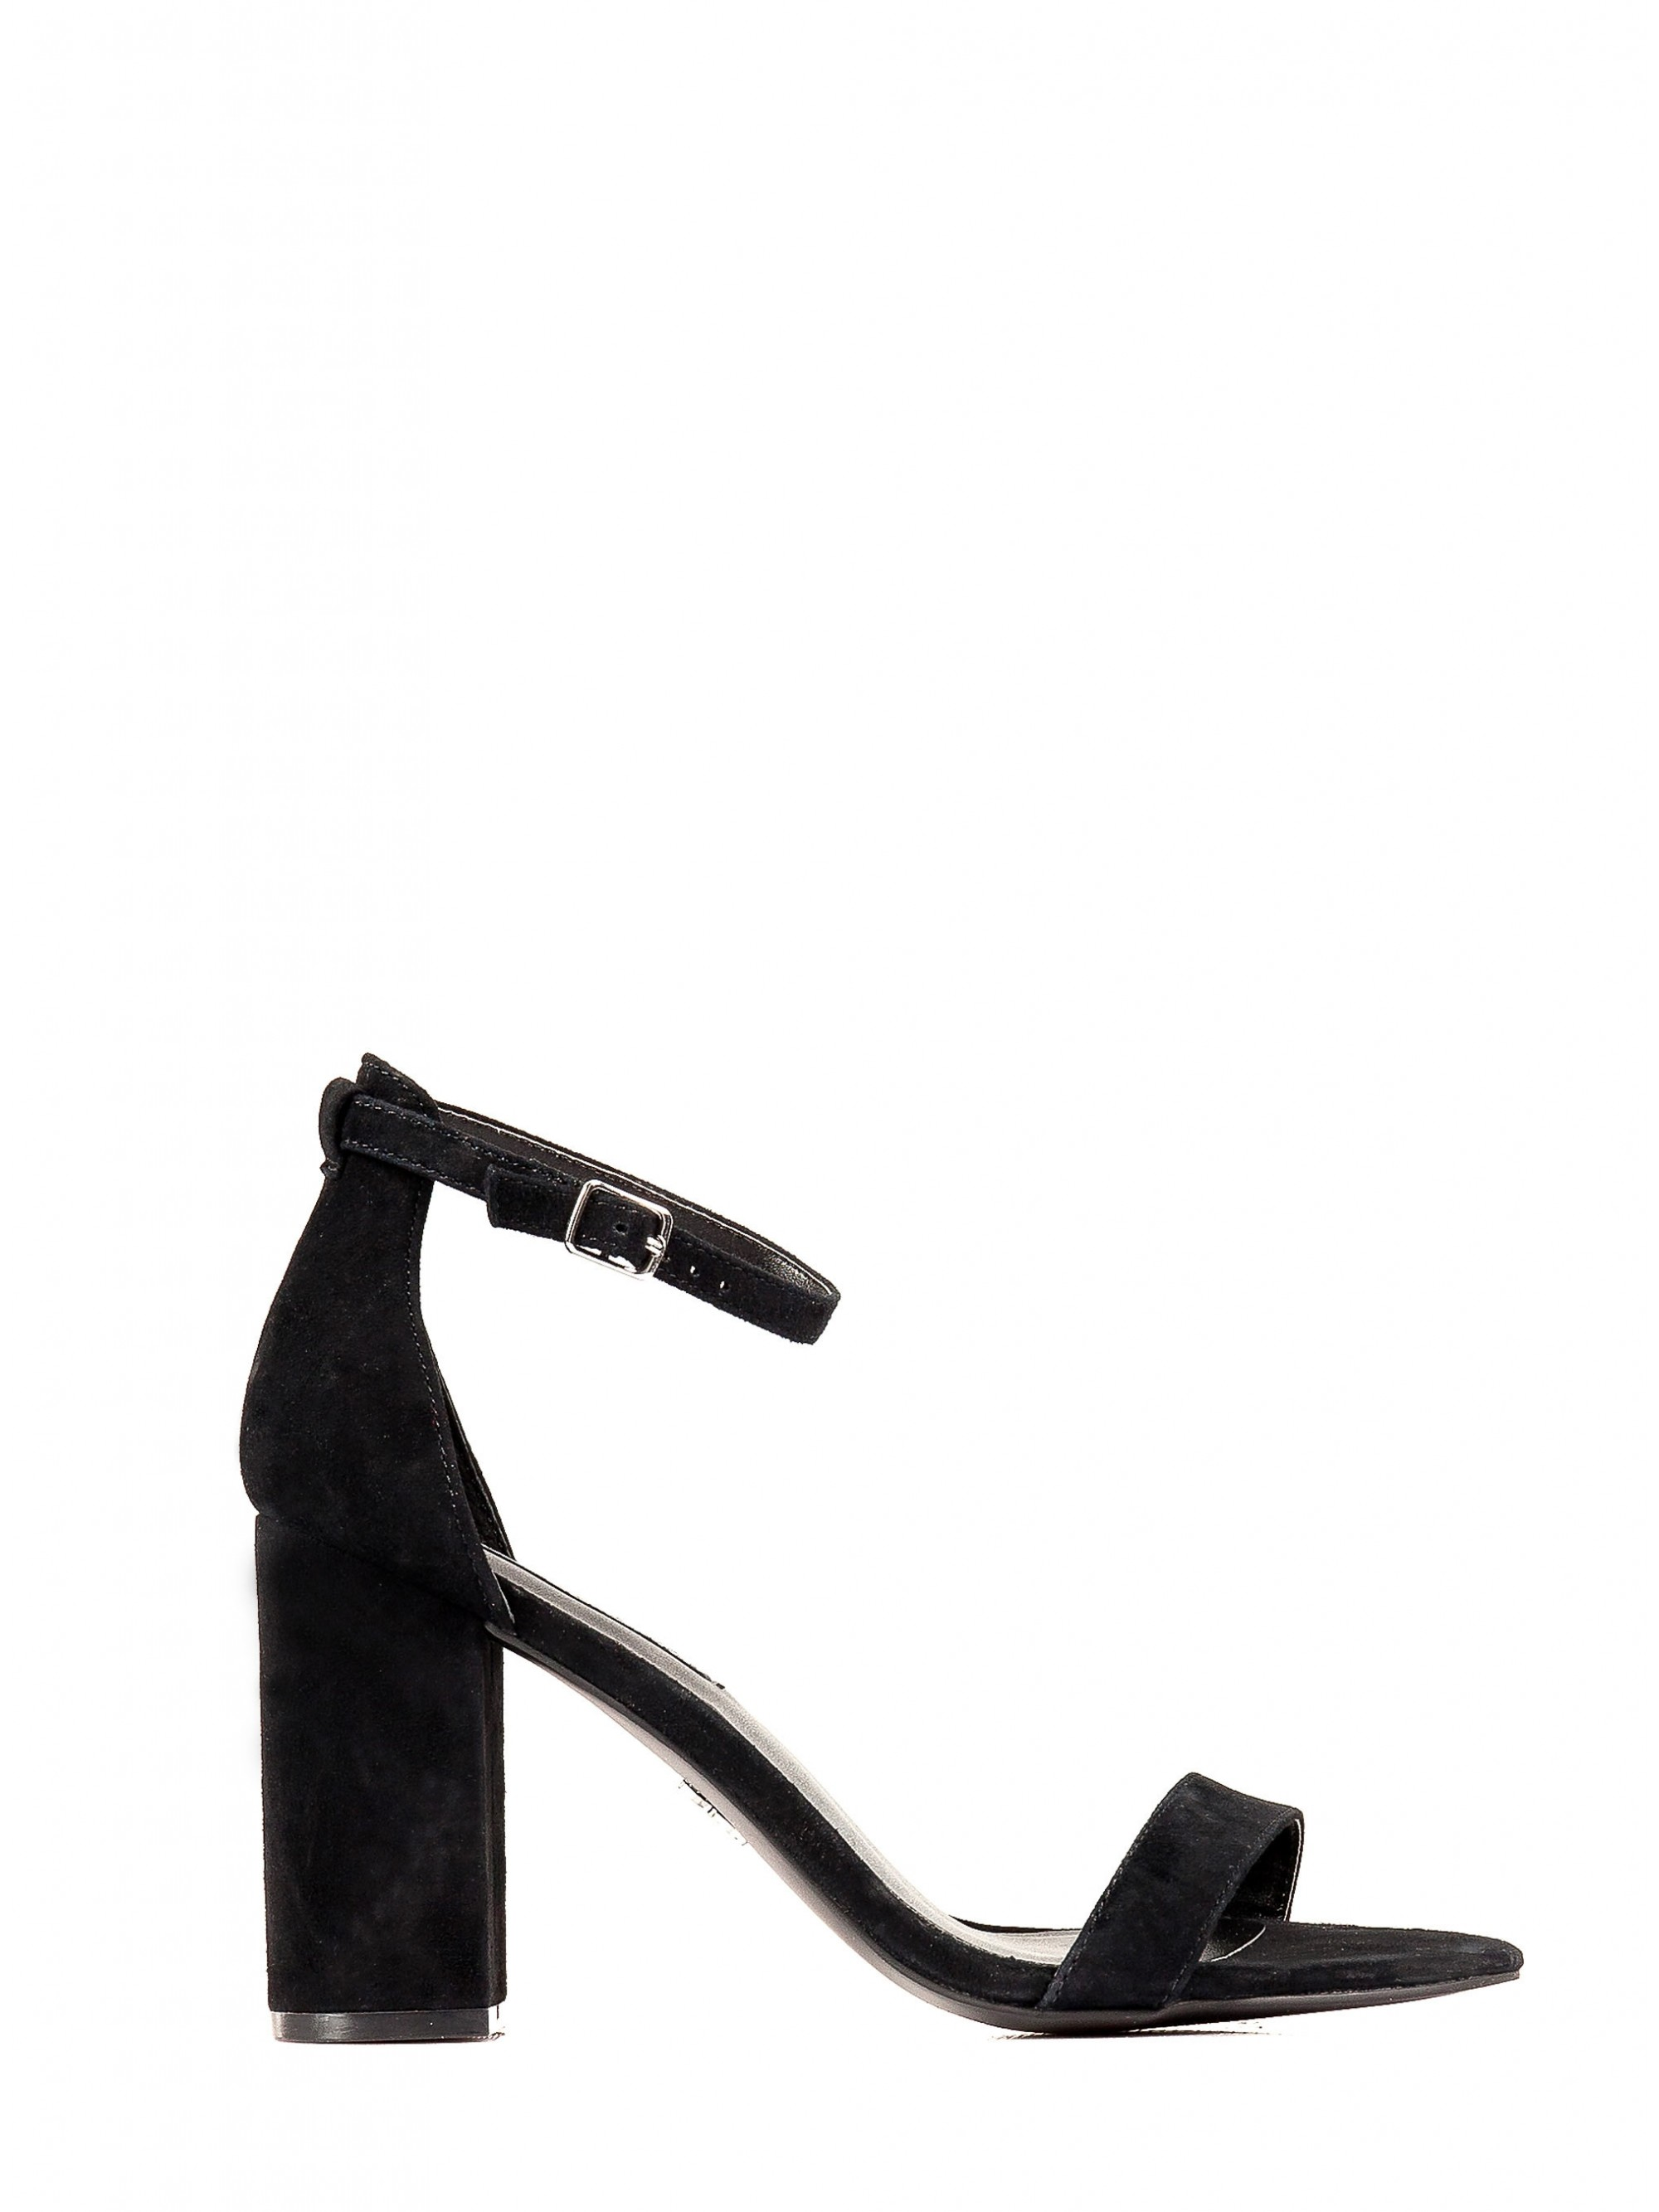 0ff4c236b4e Windsor Smith Heel Sandals Indie-Black